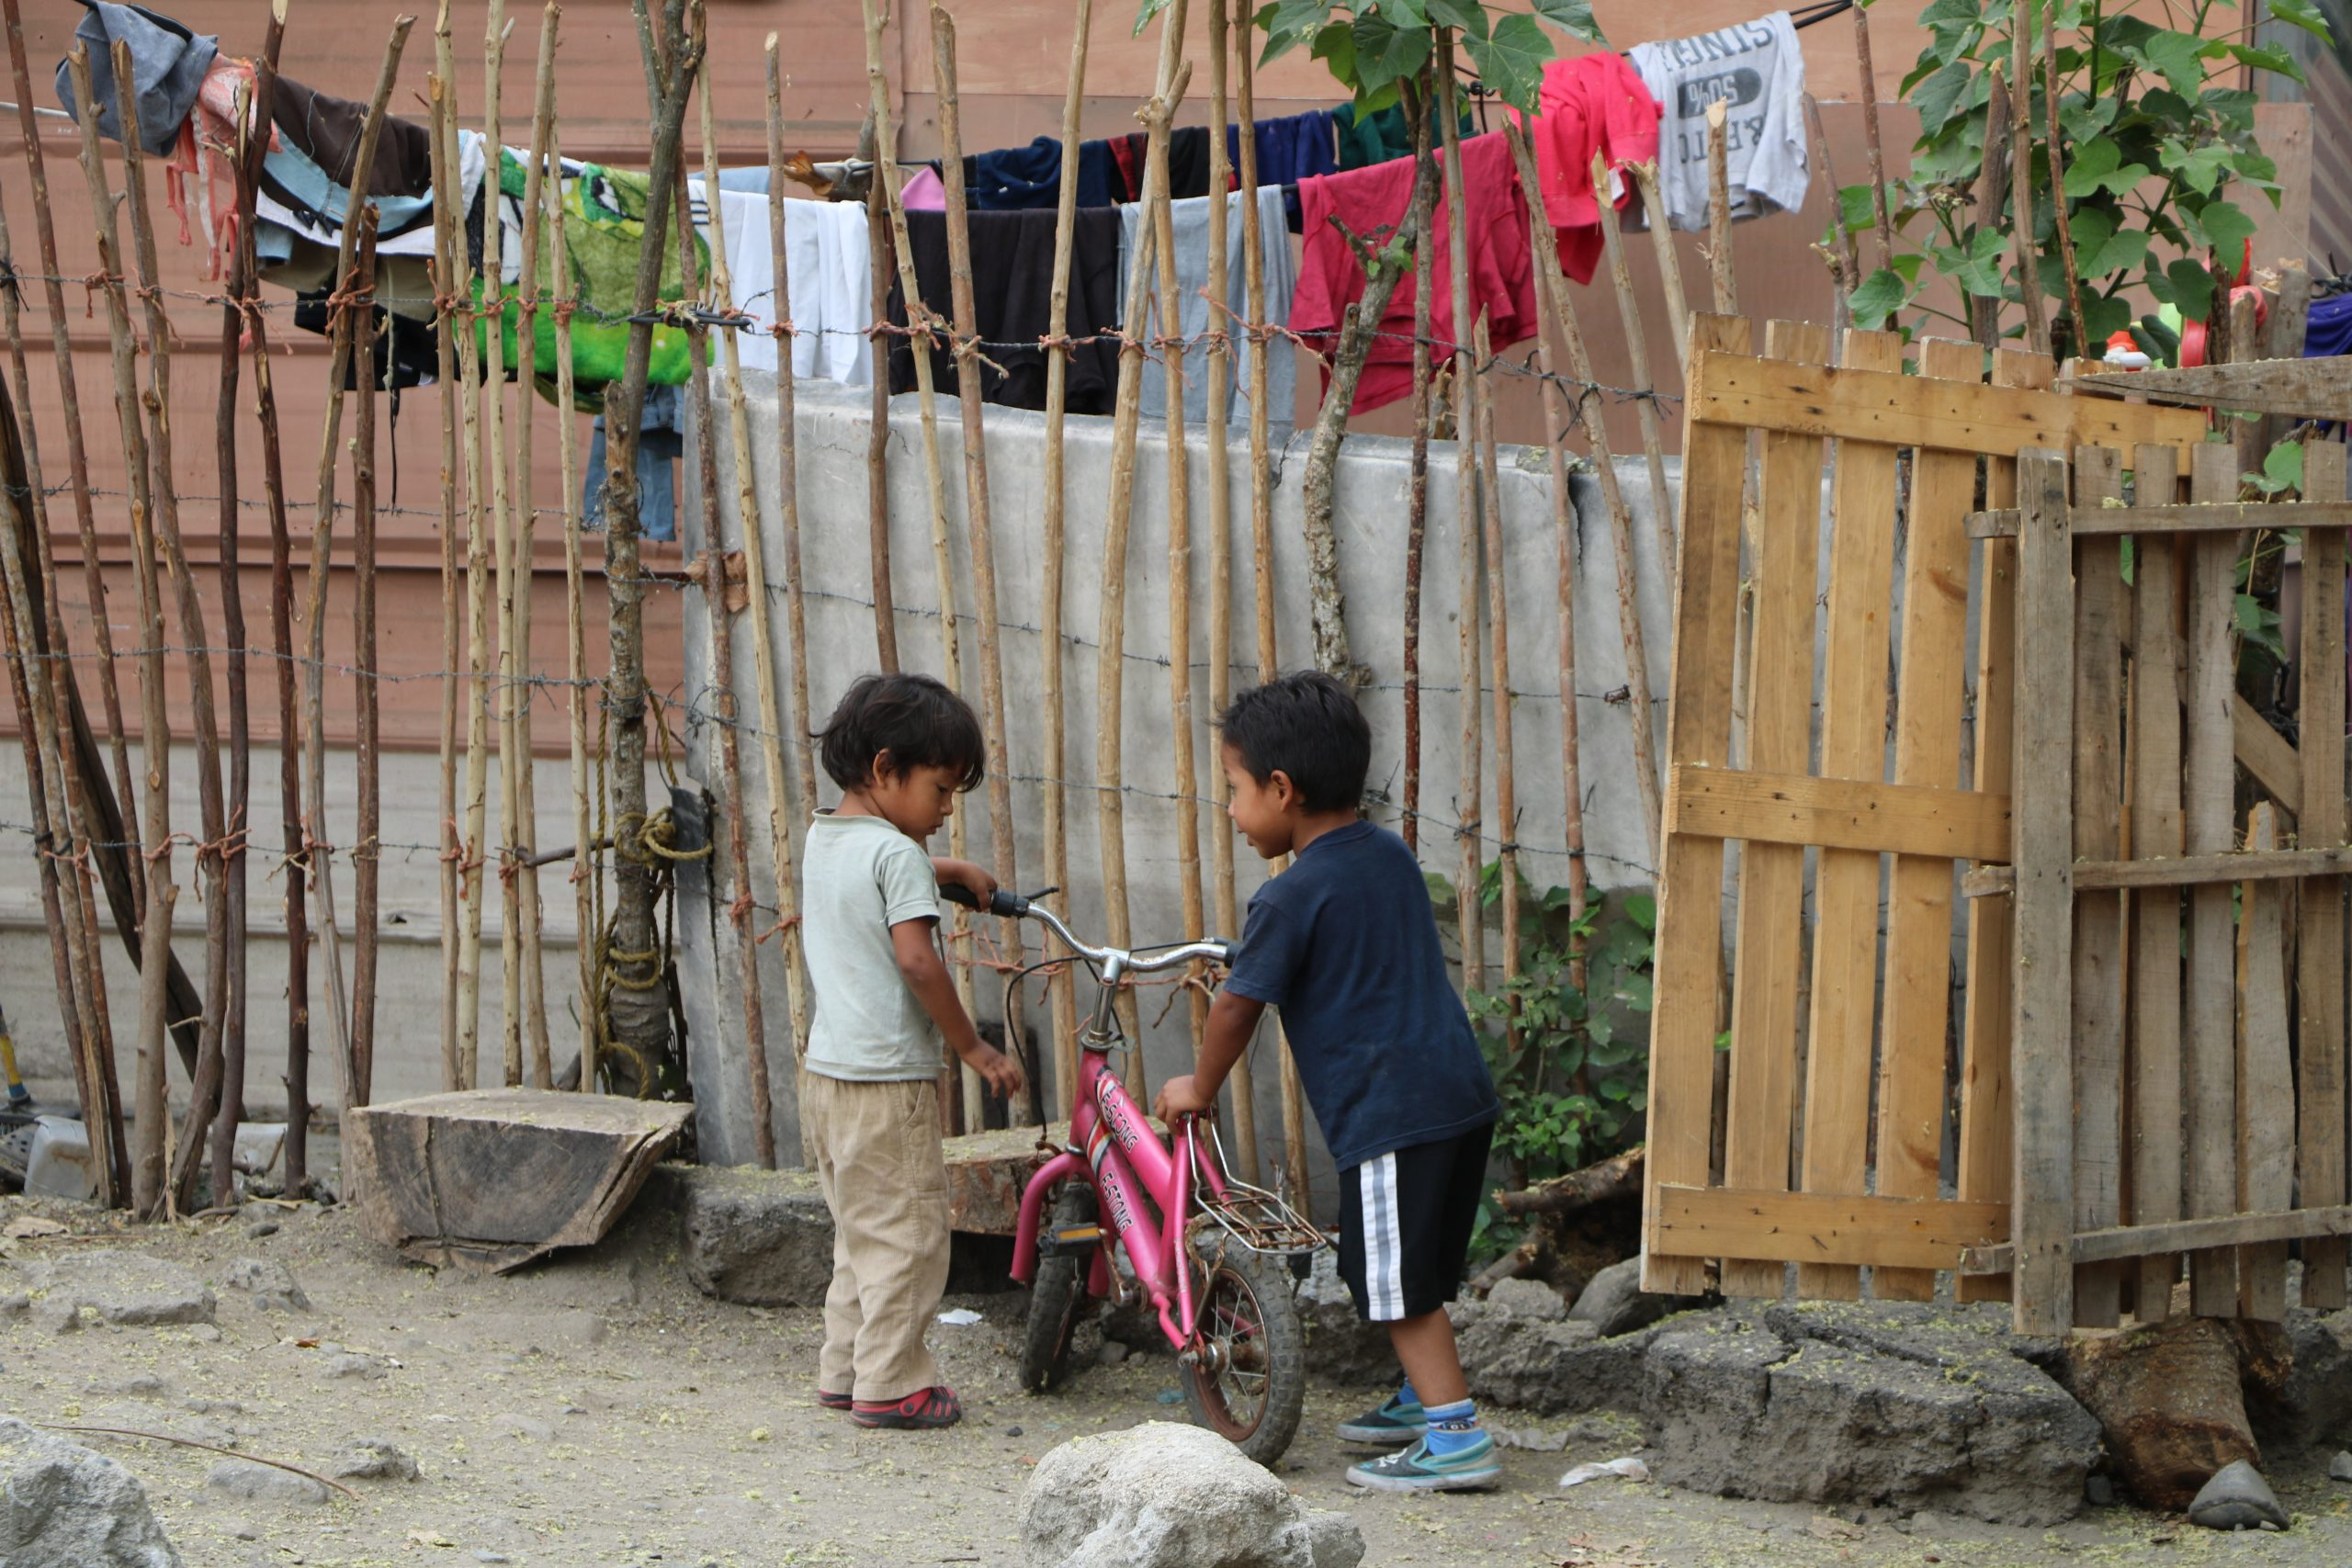 Two Honduran children play together outside of their home.